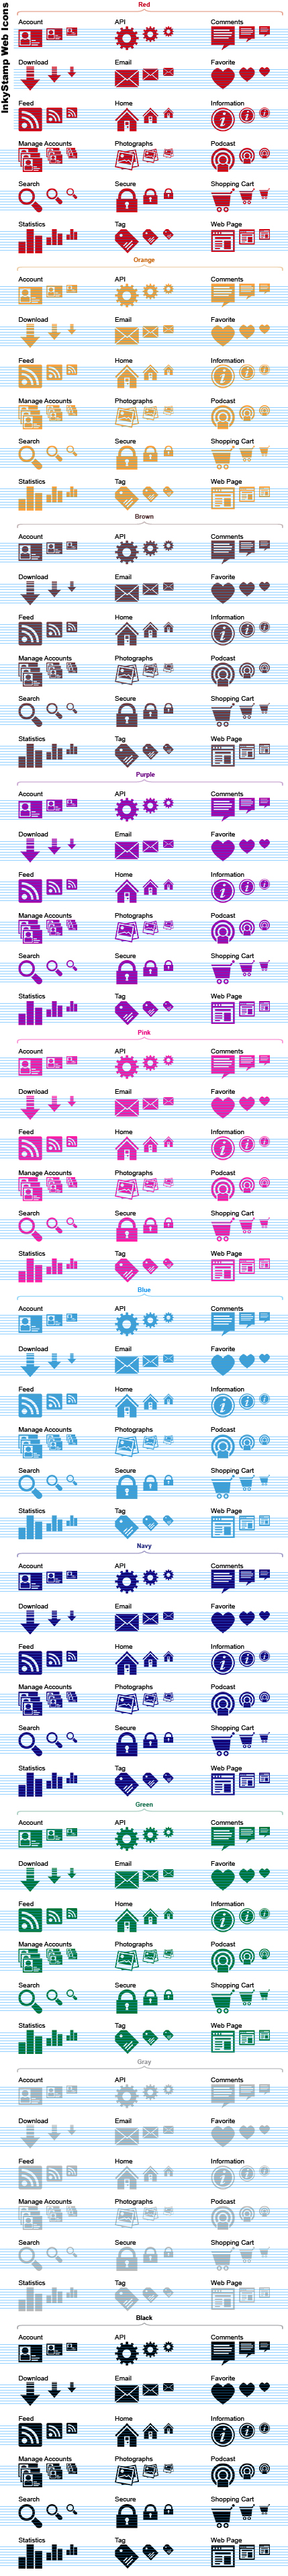 InkyStamp Web Stock Icons